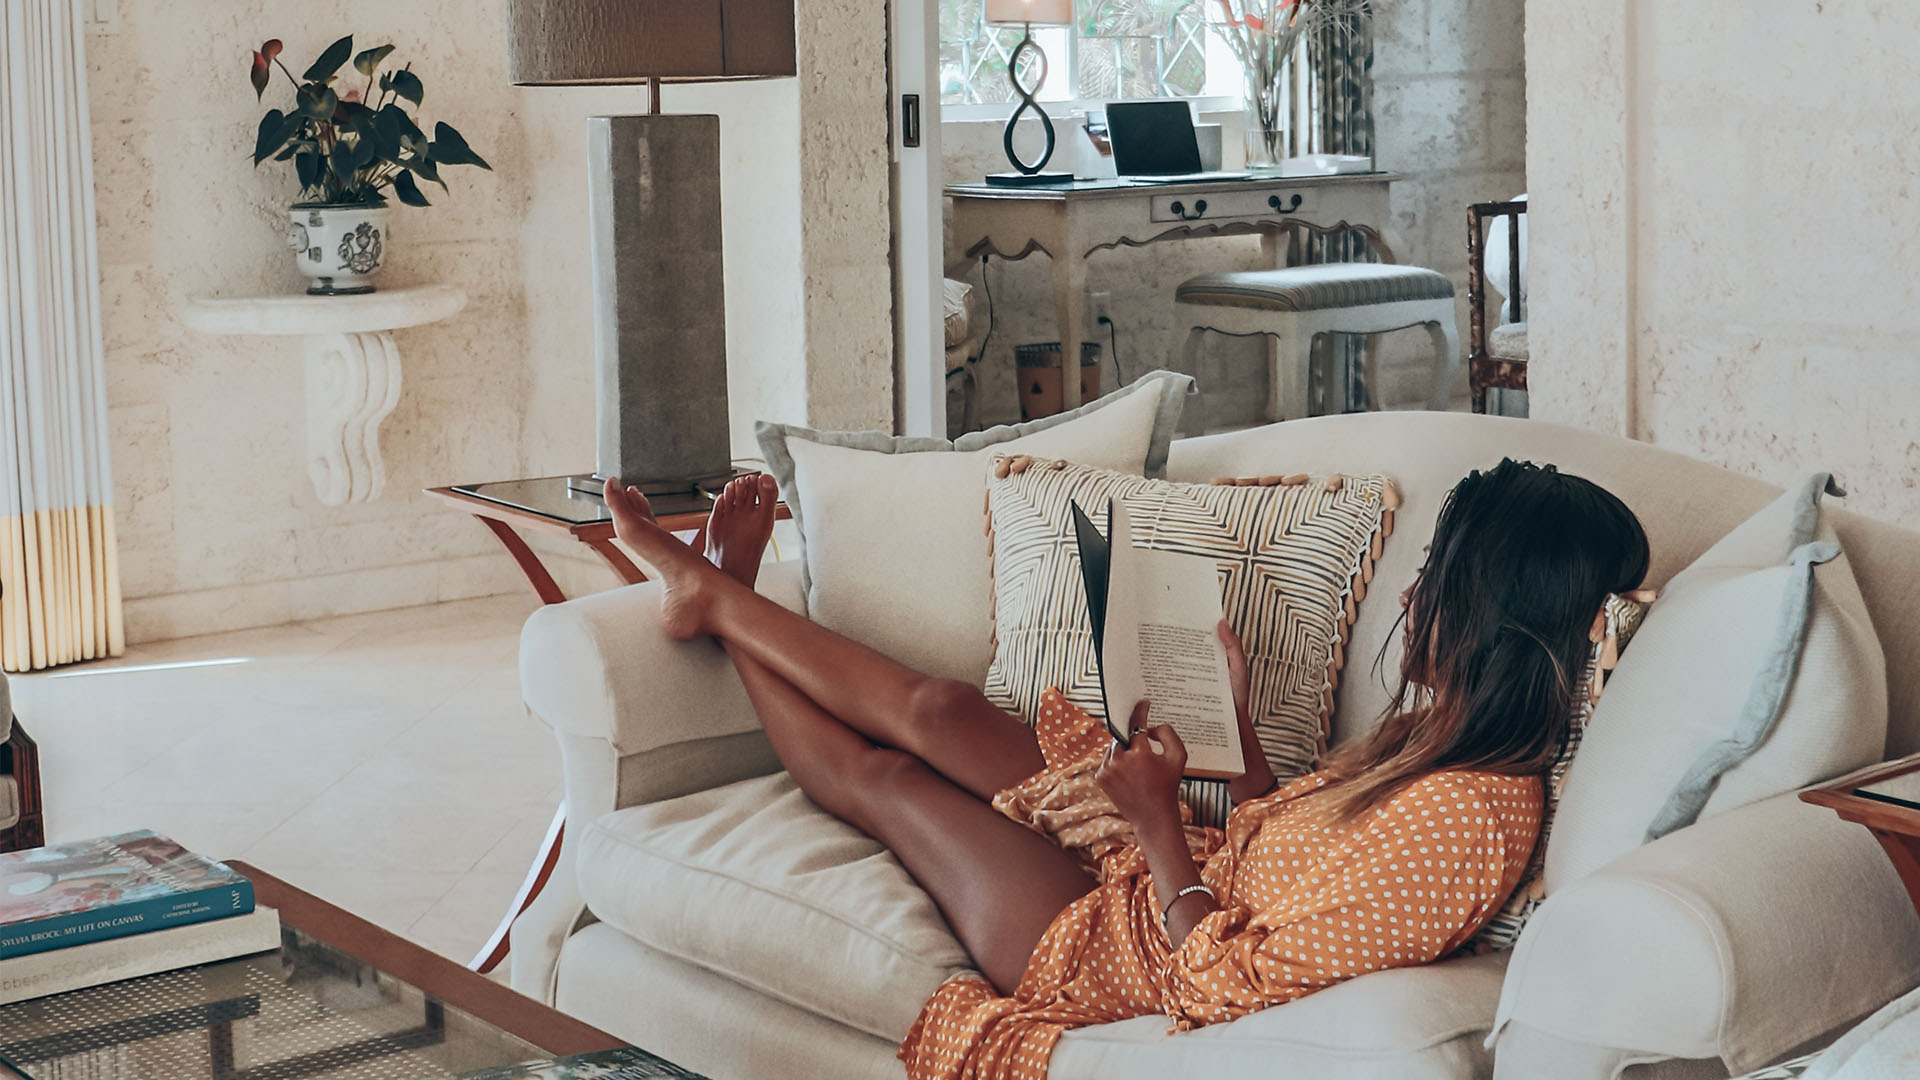 Our lockdown reading list: 5 travel books to keep you inspired